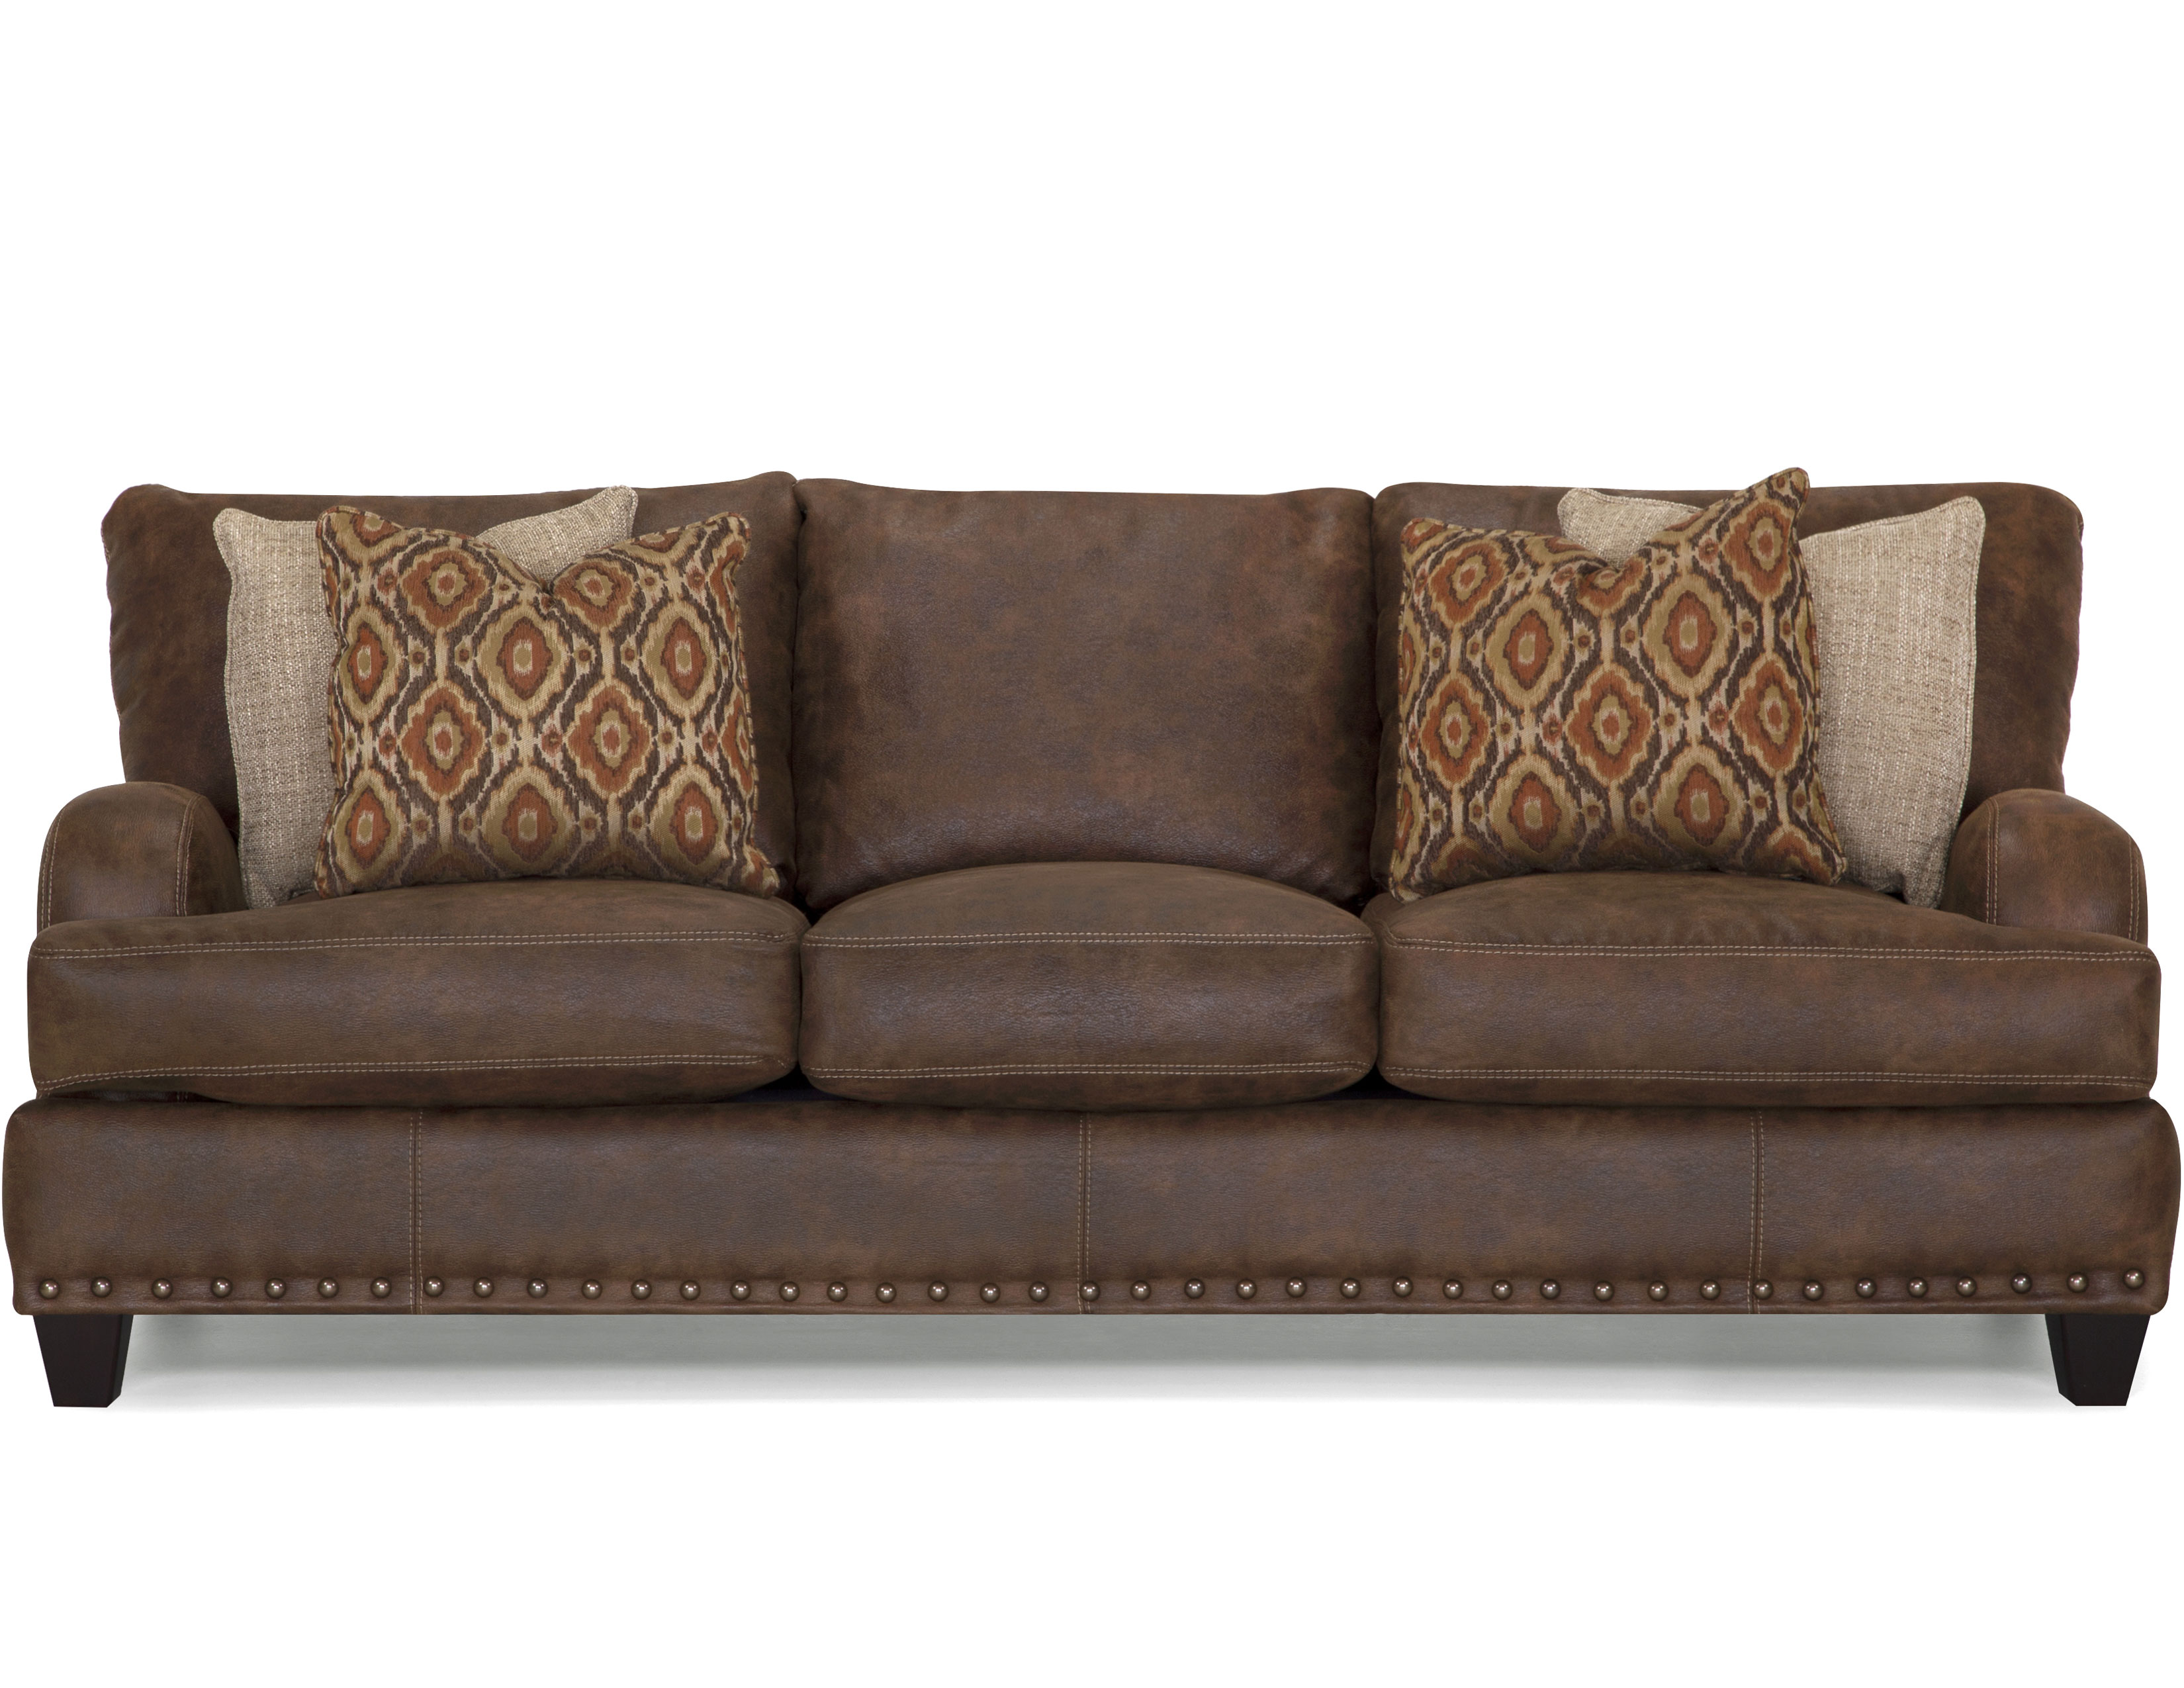 Indira 848 Stationary Sofa 93 Sofas And Sectionals